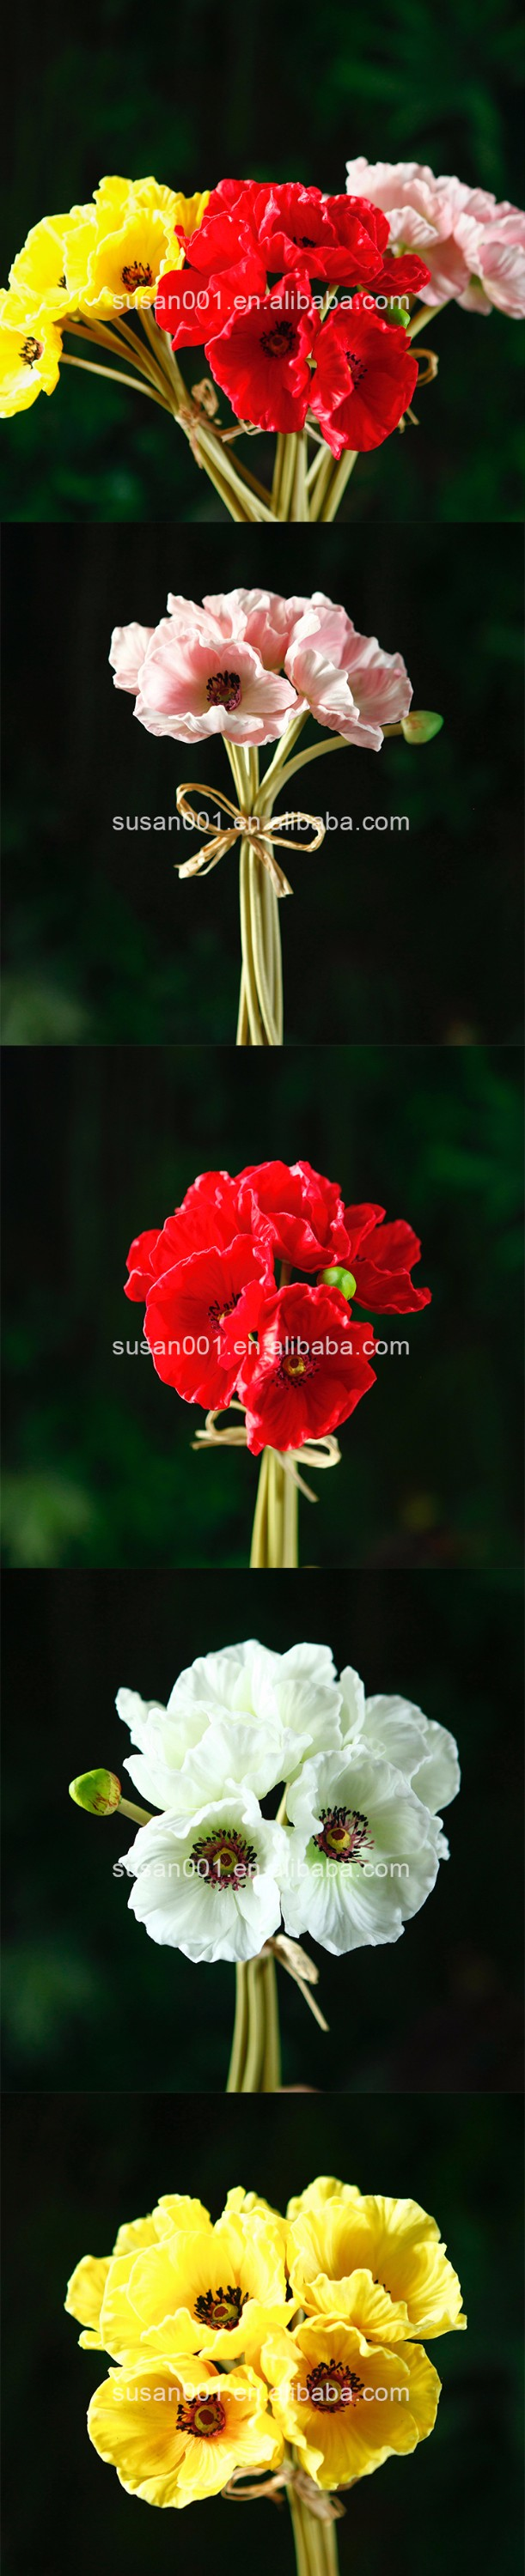 Pu Handmade Poppy Flower Latex Real Touch Decorative Artificial